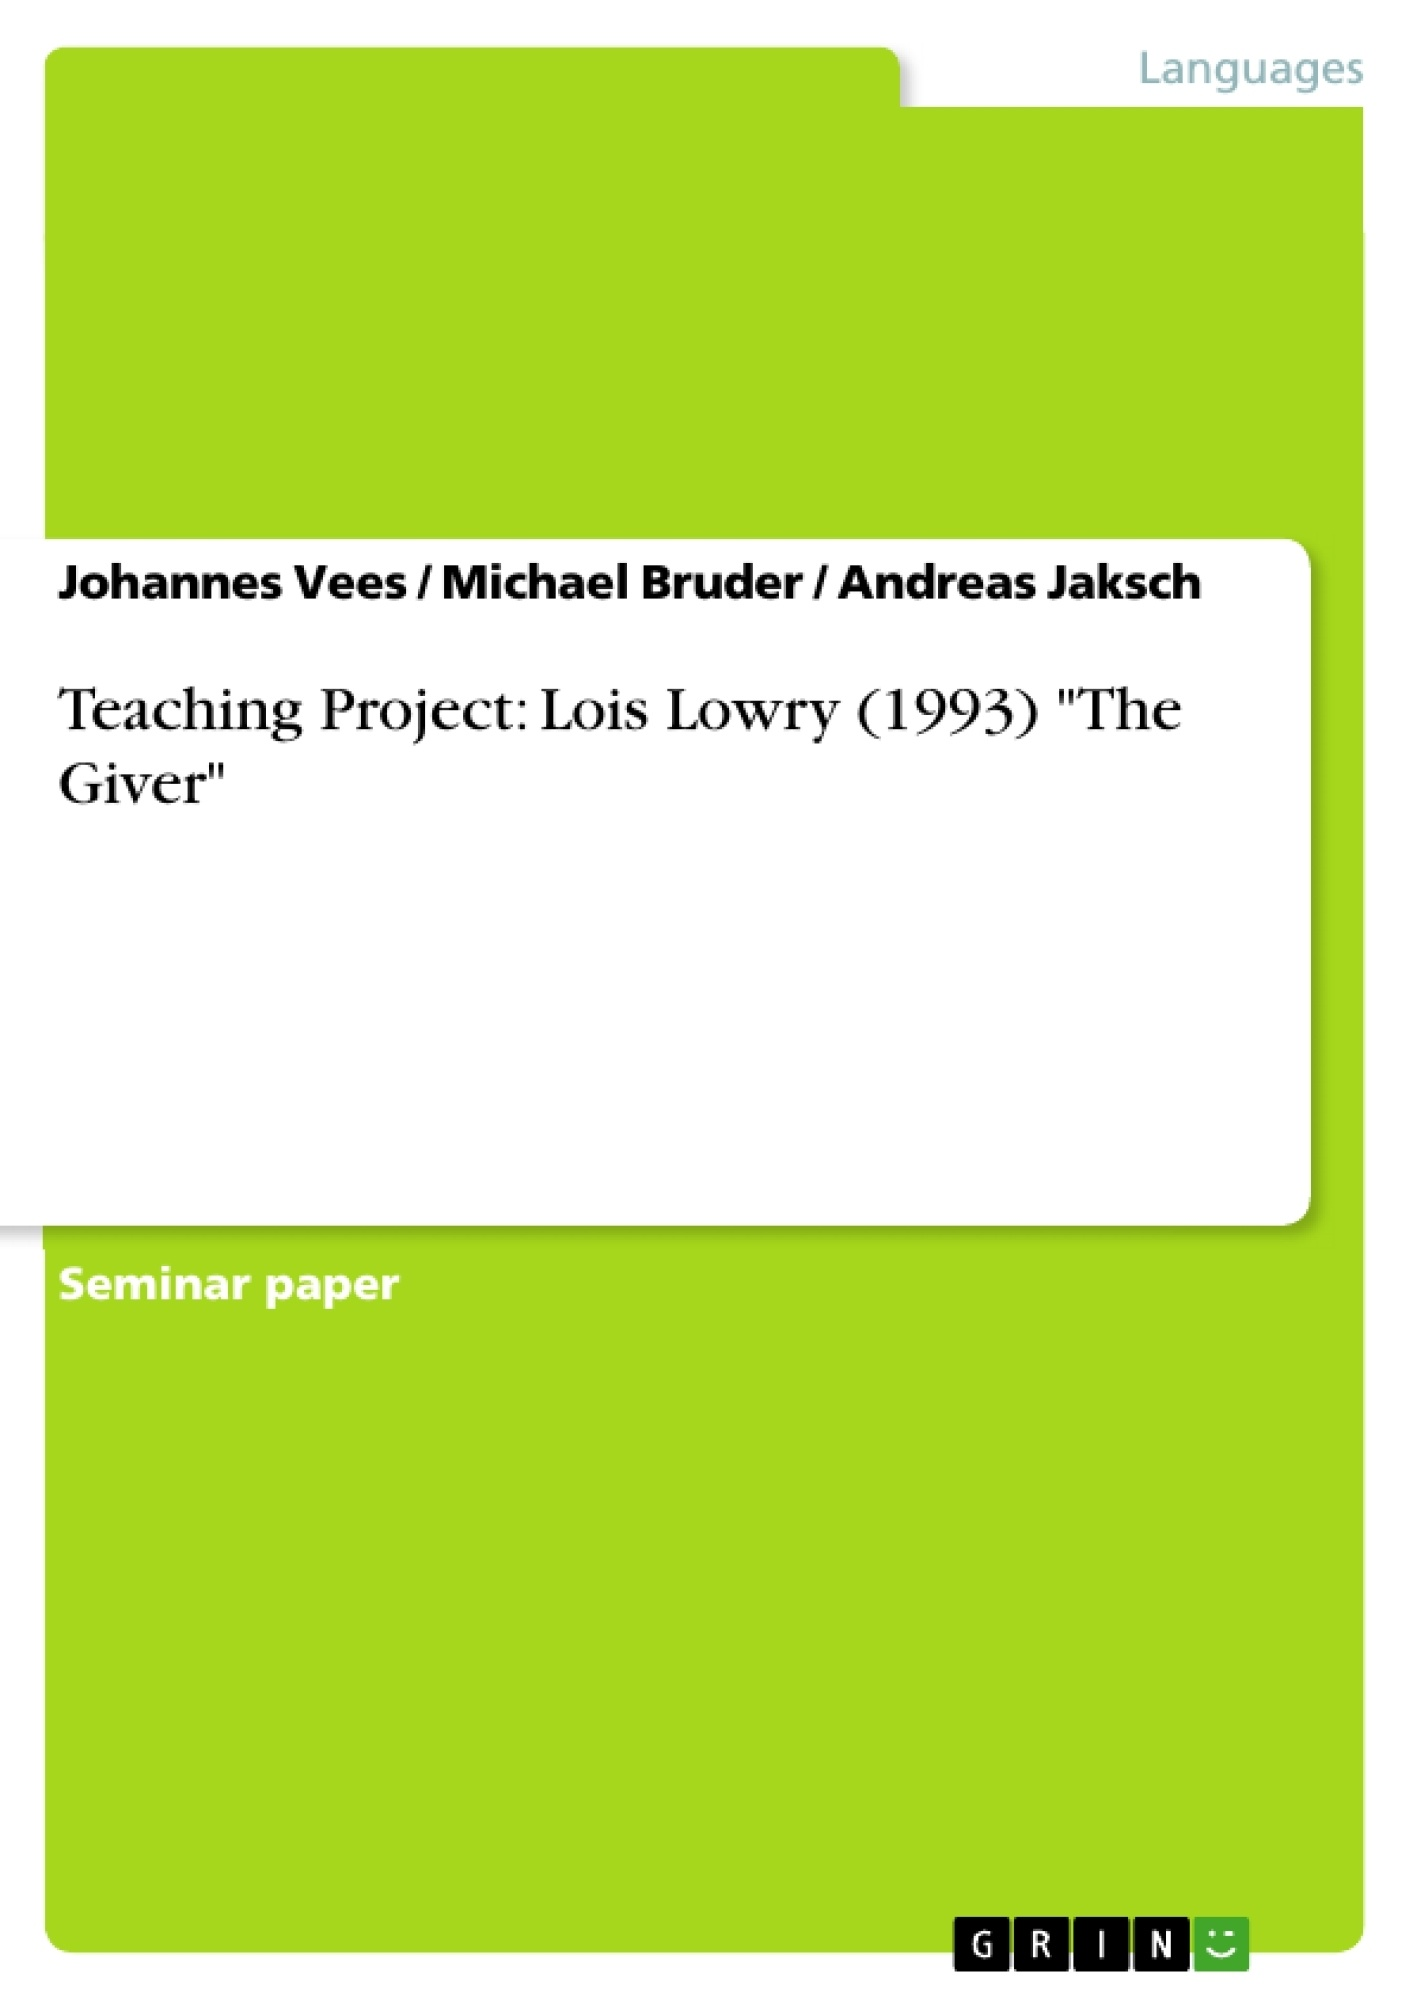 """Title: Teaching Project: Lois Lowry (1993) """"The Giver"""""""